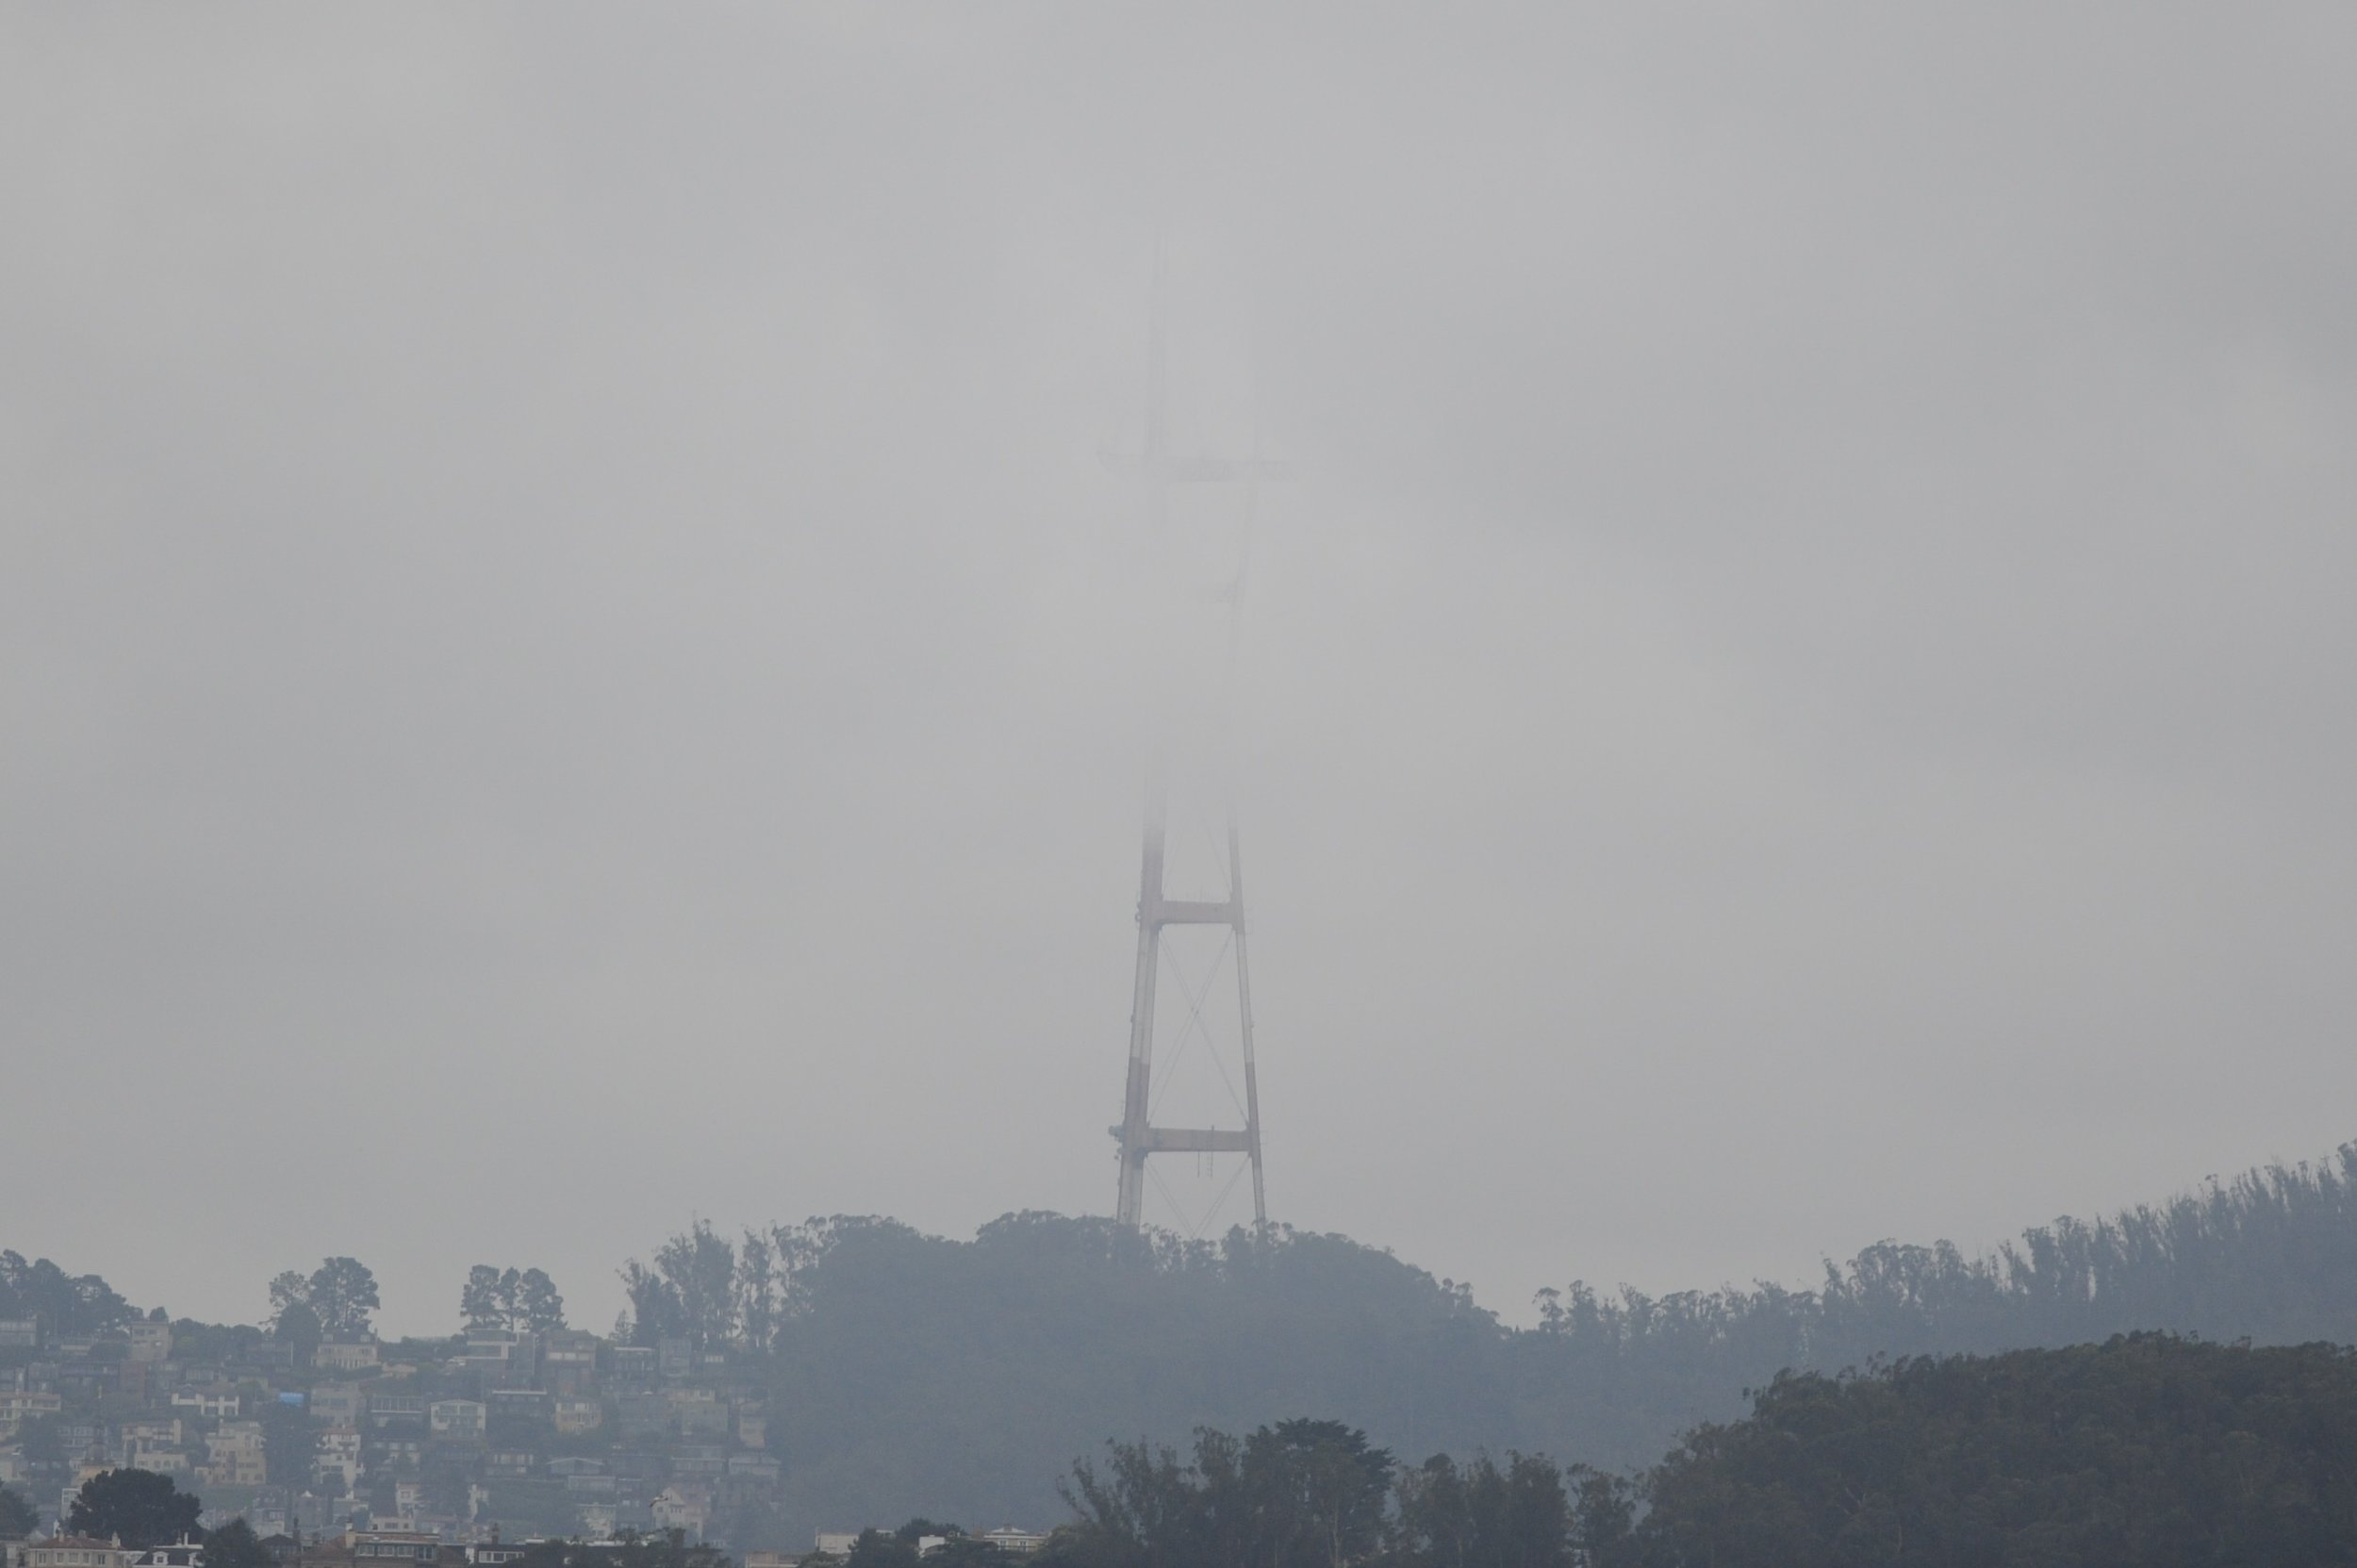 Sutro tower in the fog.